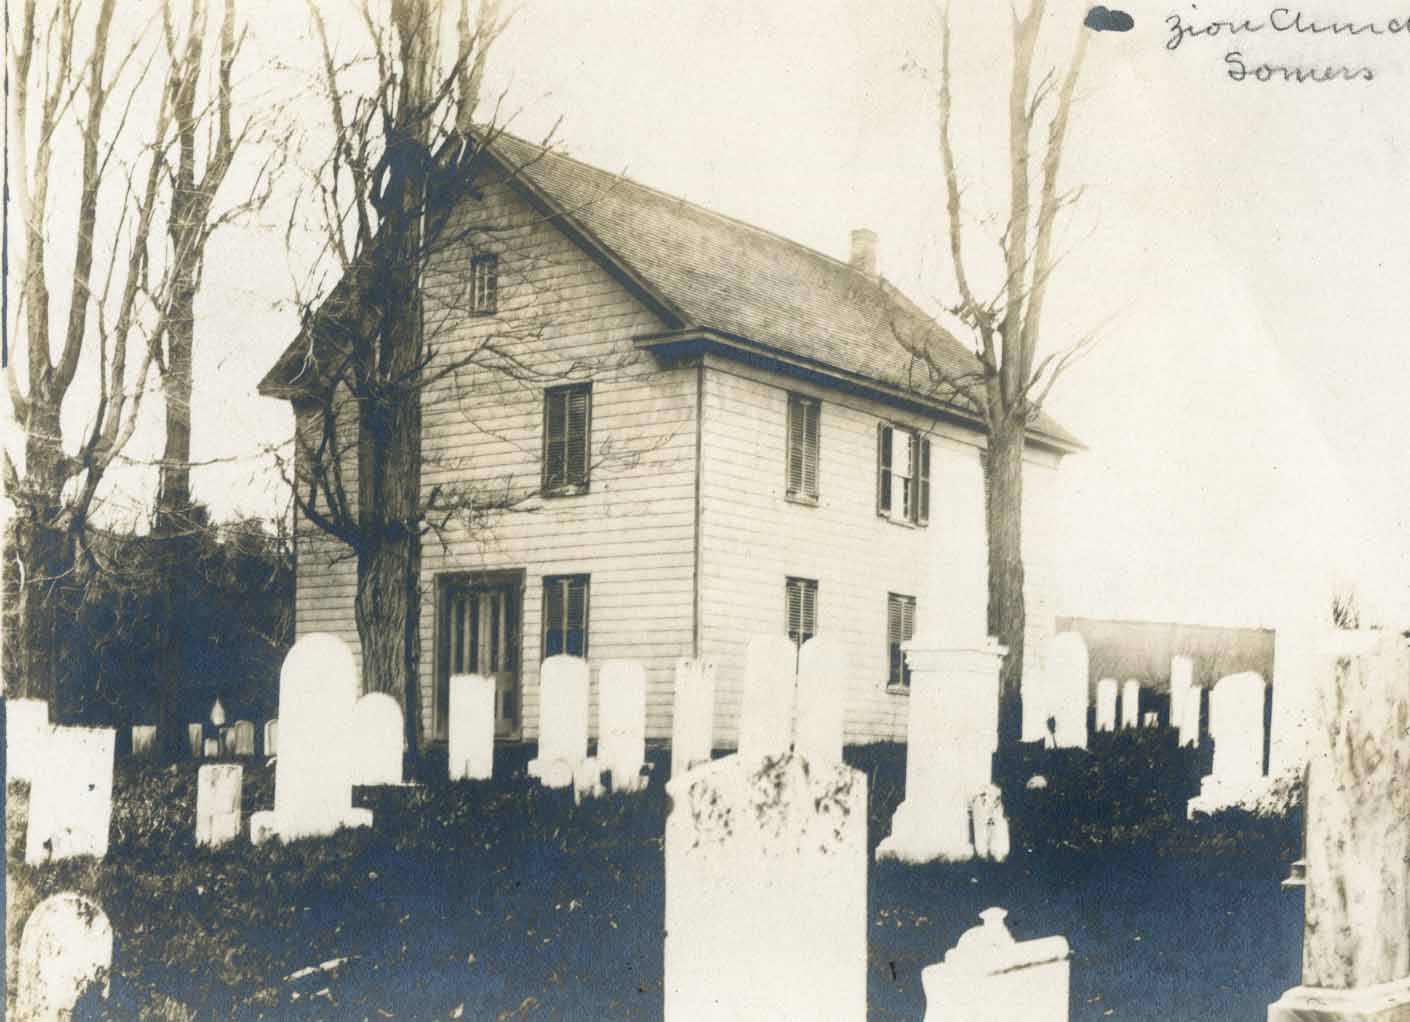 Mt. Zion Methodist Church in the early 20th century.